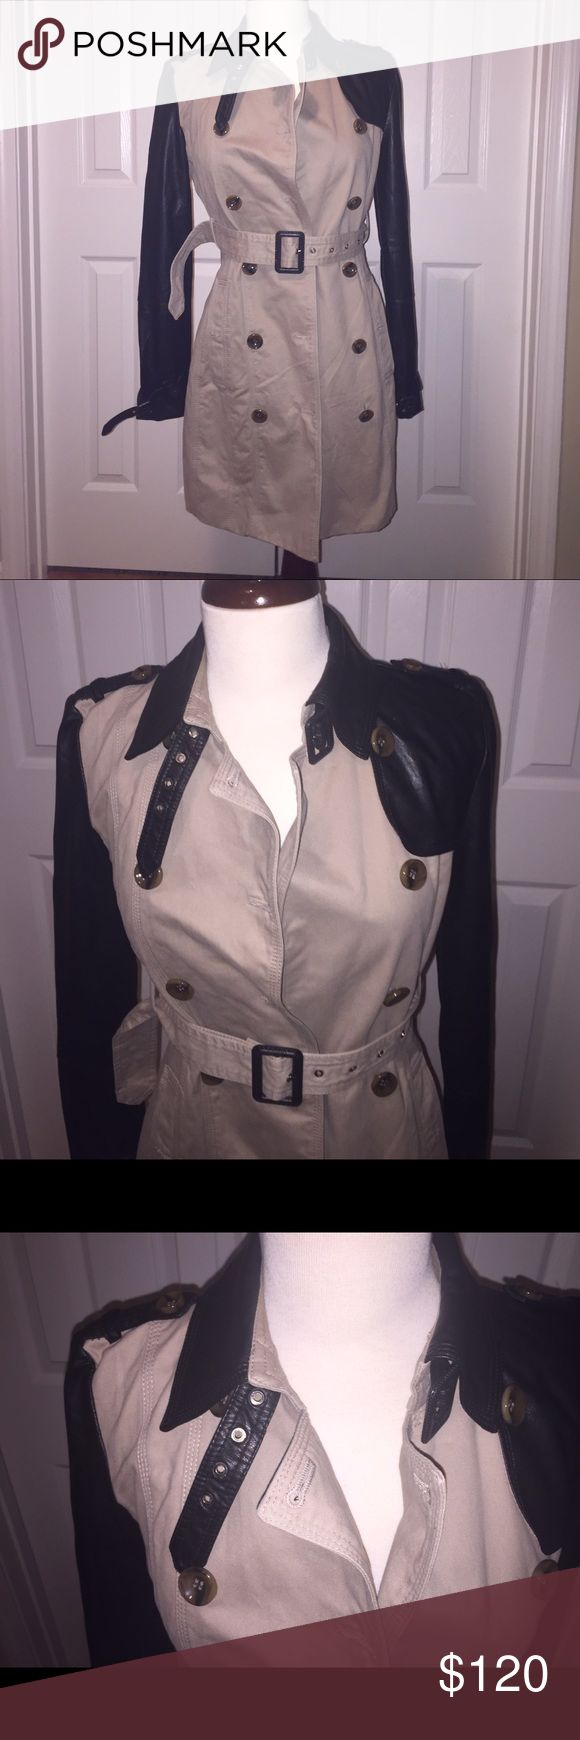 W118 by Walter Baker Trench Coat The highly sought after trench coat from Walter Baker is here! This is a wardrobe must have! Jacket is on excellent condition. All buttons and leather in tack. No flaws. Fits true to size W118 by Walter Baker Jackets & Coats Trench Coats